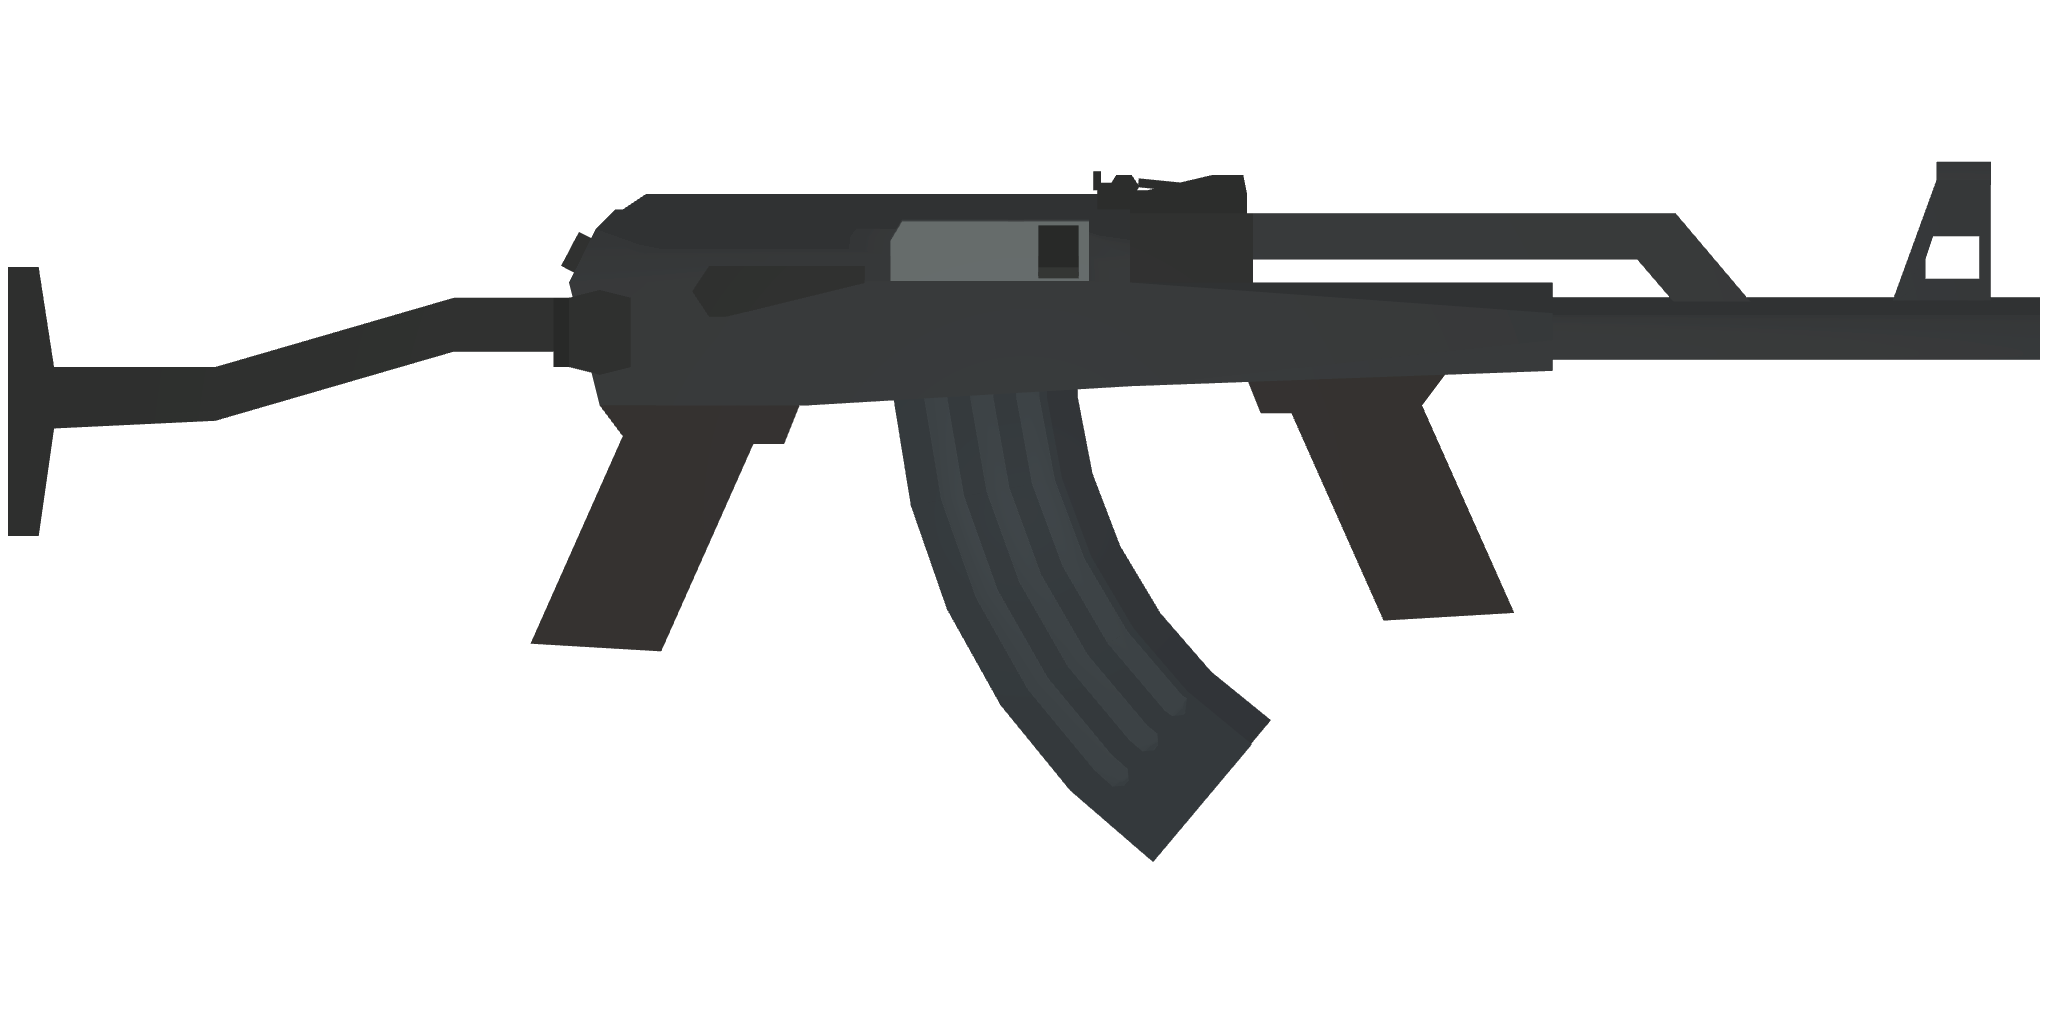 Unturned Uncreated Warfare Mods & All ID List + Attachments - Russian Weapons - AEE686C